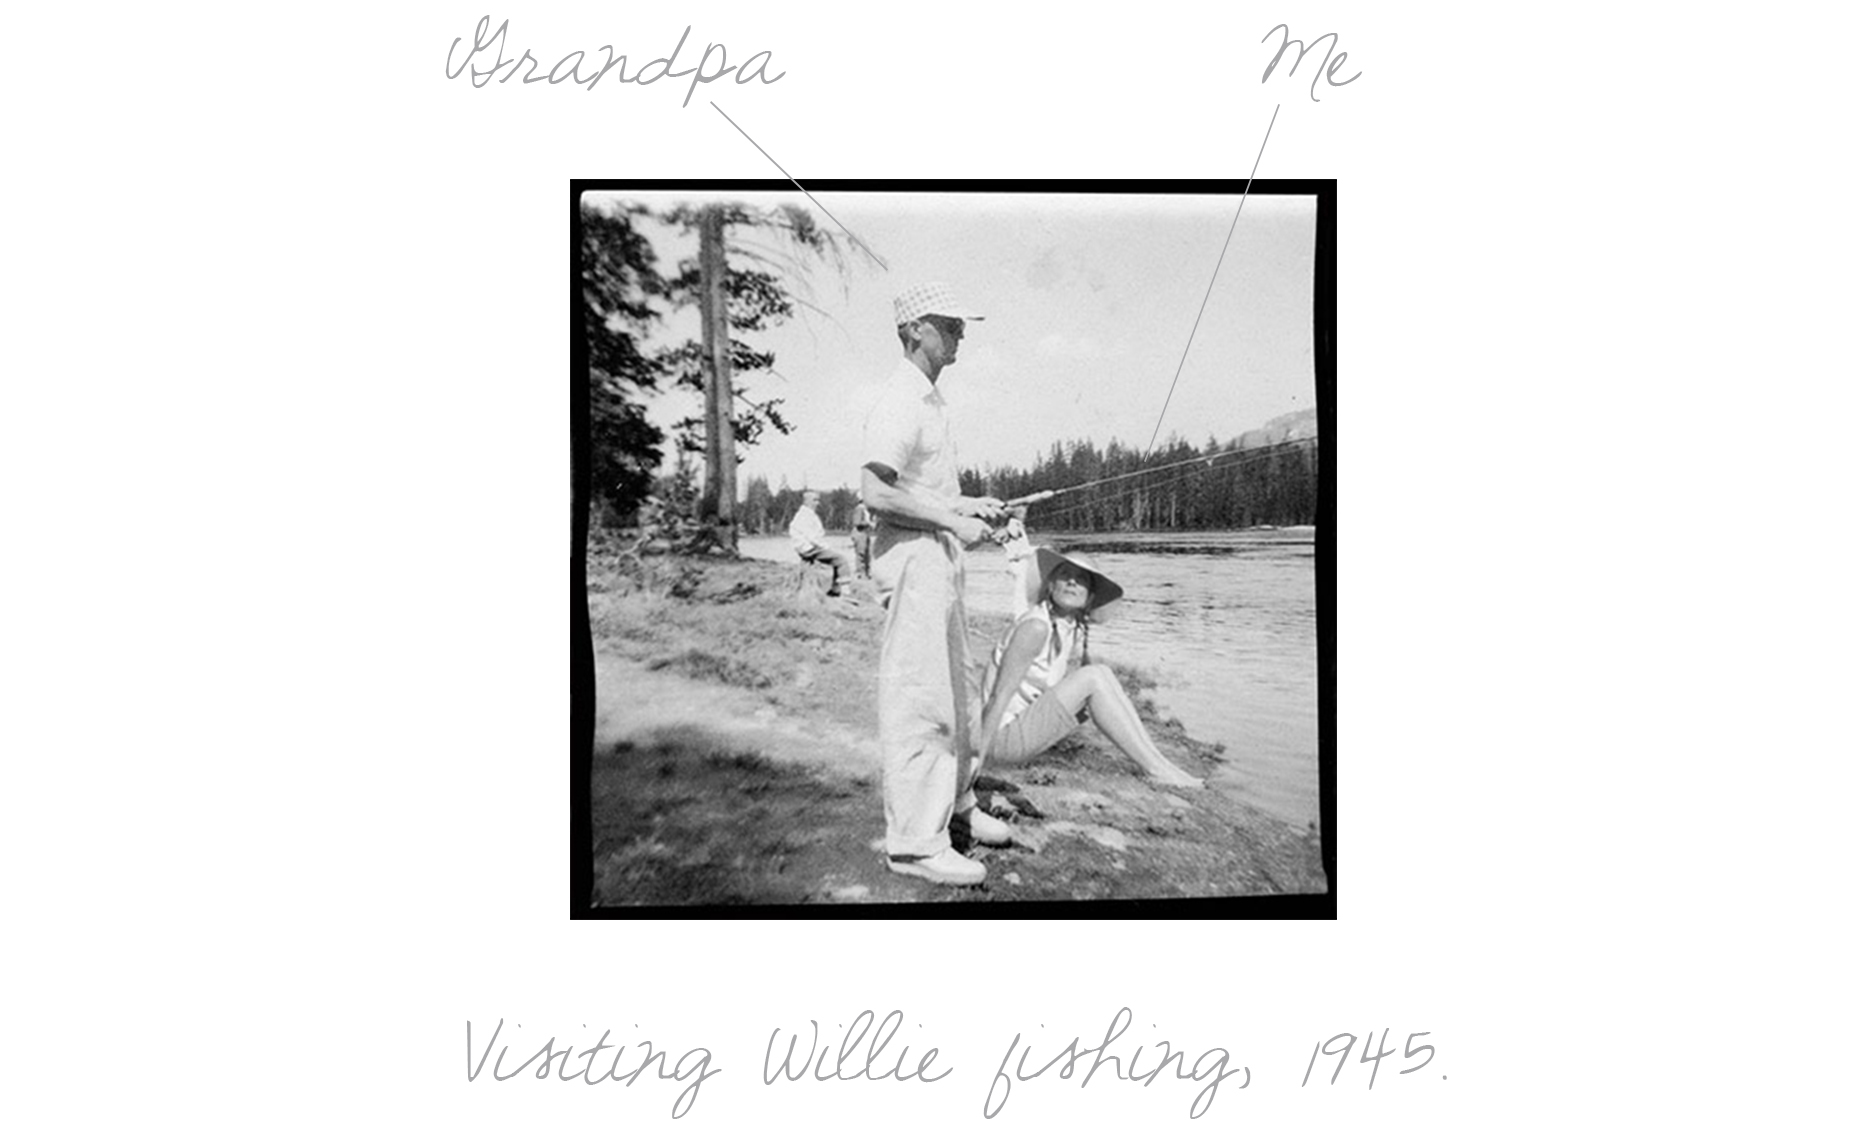 Visiting Willie Fishing 1945 TXT